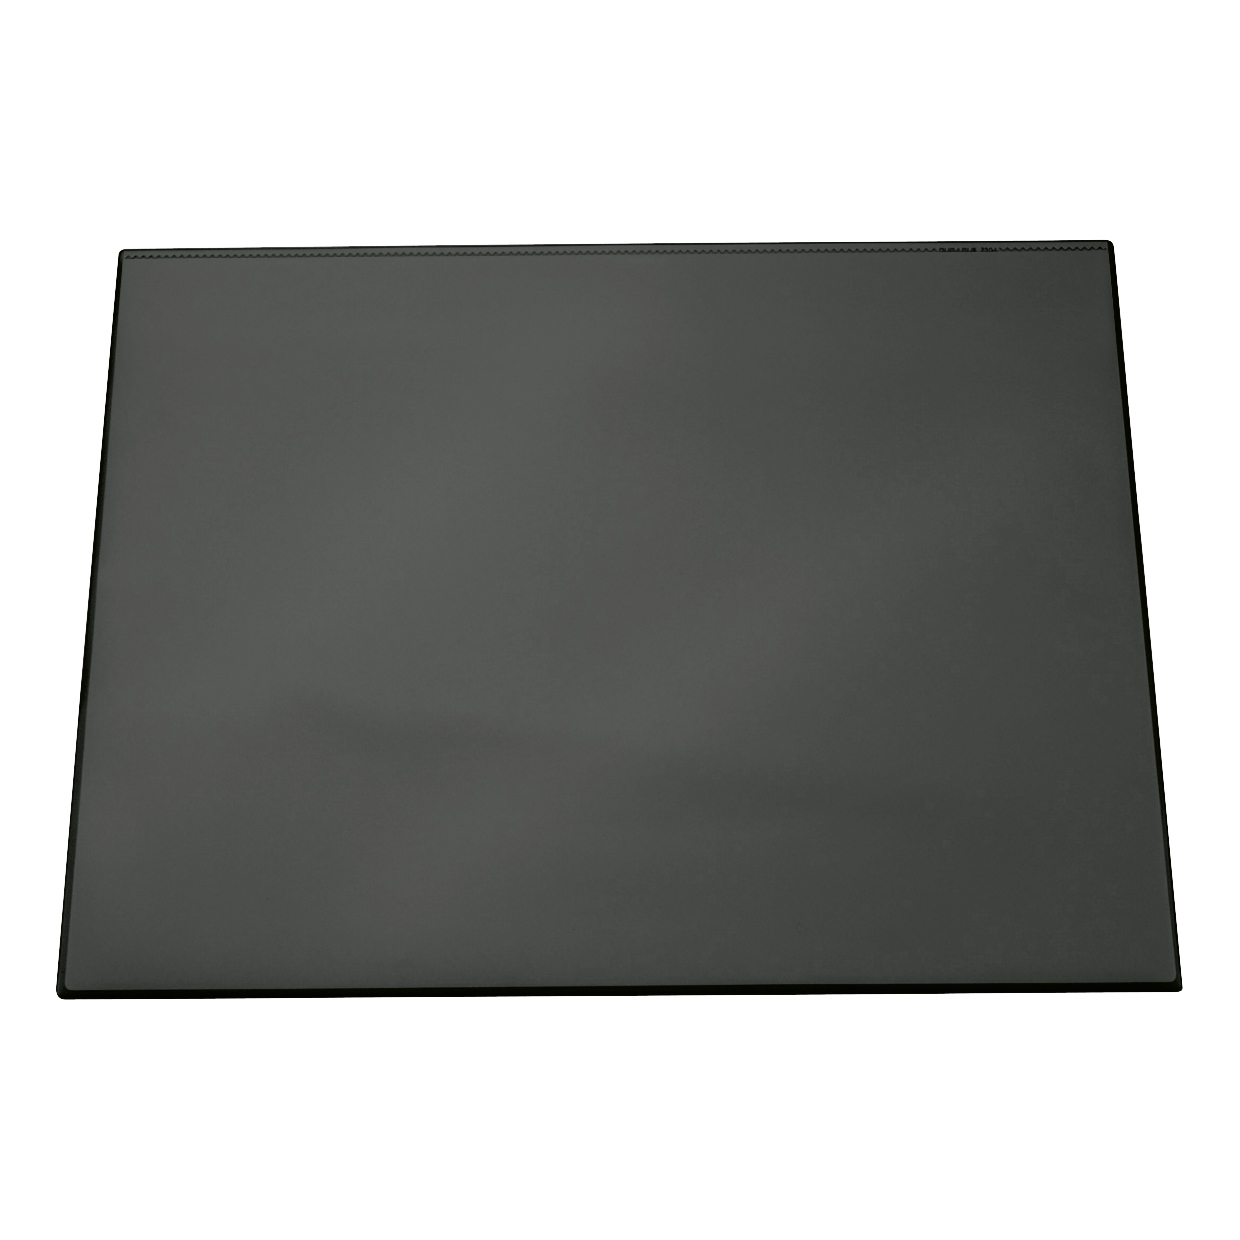 Durable Desk Mat with Transparent Overlay W650xD520mm Black Ref 7203/01